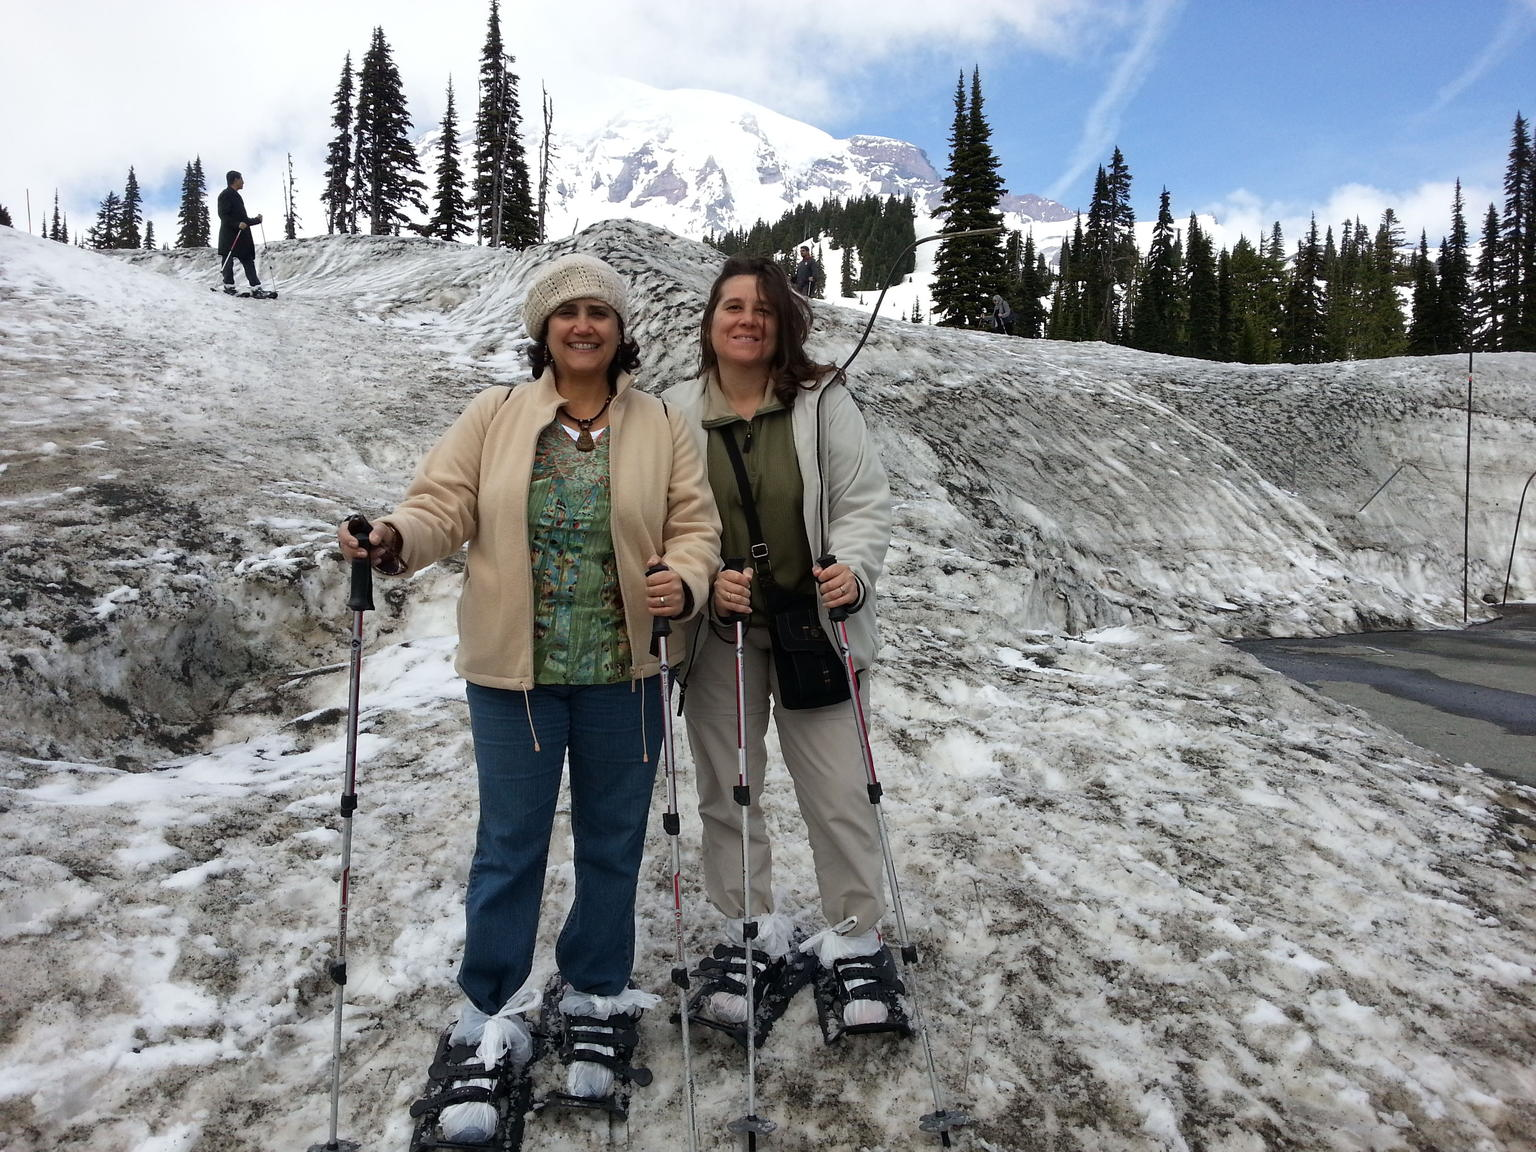 Mt. Rainier Day Tour from Seattle